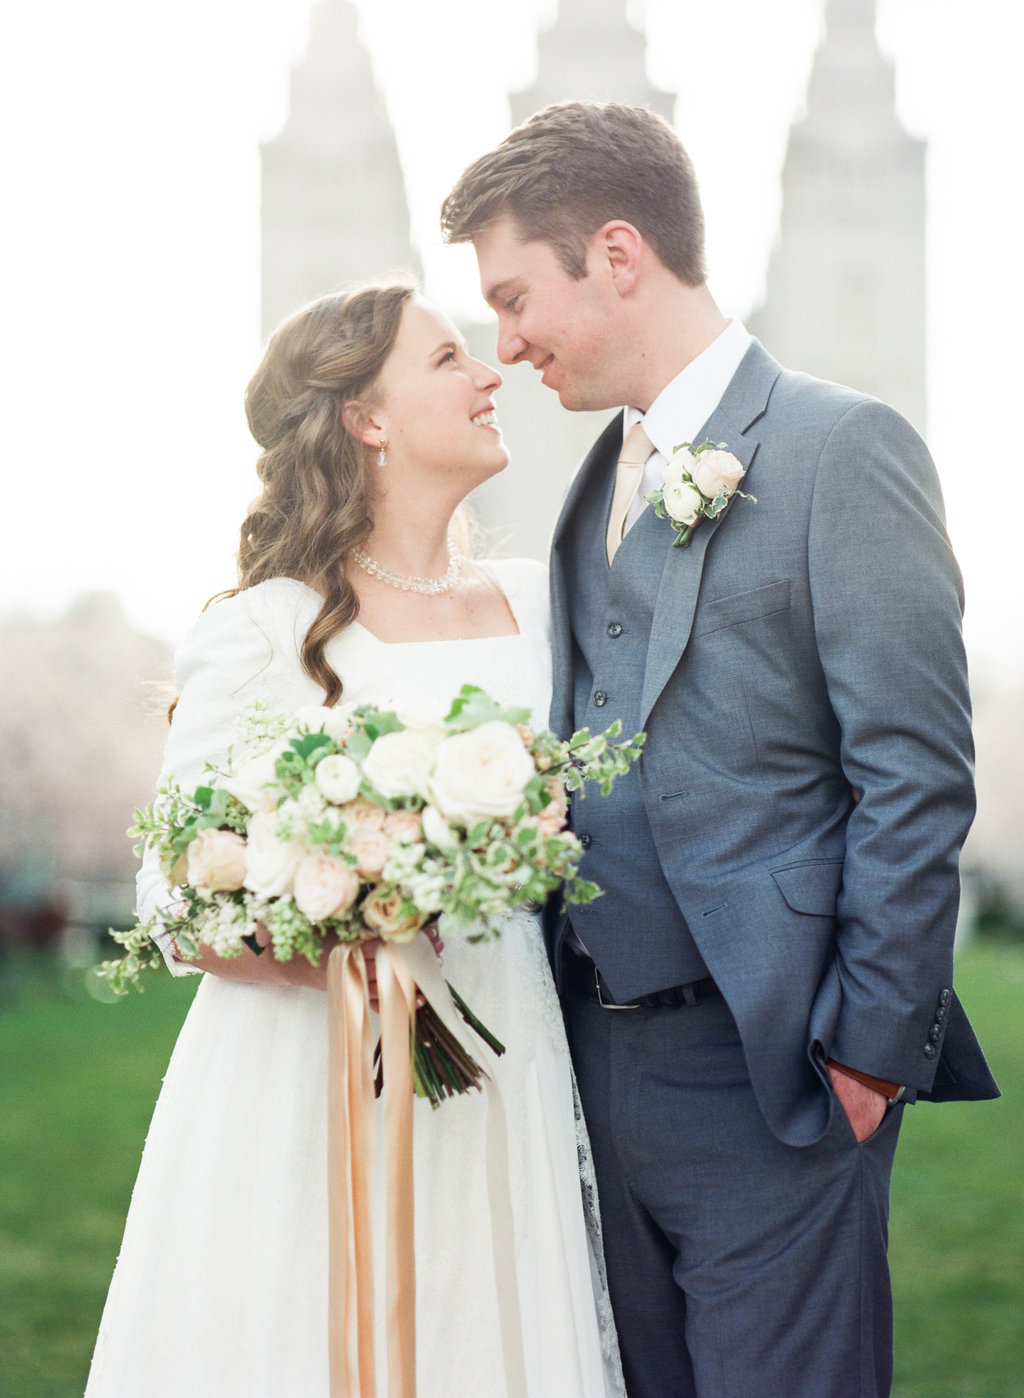 Spring Wedding at The Grand America | Blush Wedding | Hotel Wedding | Michelle Leo Events | Utah Event Planner and Designer | Heather Nan Photography